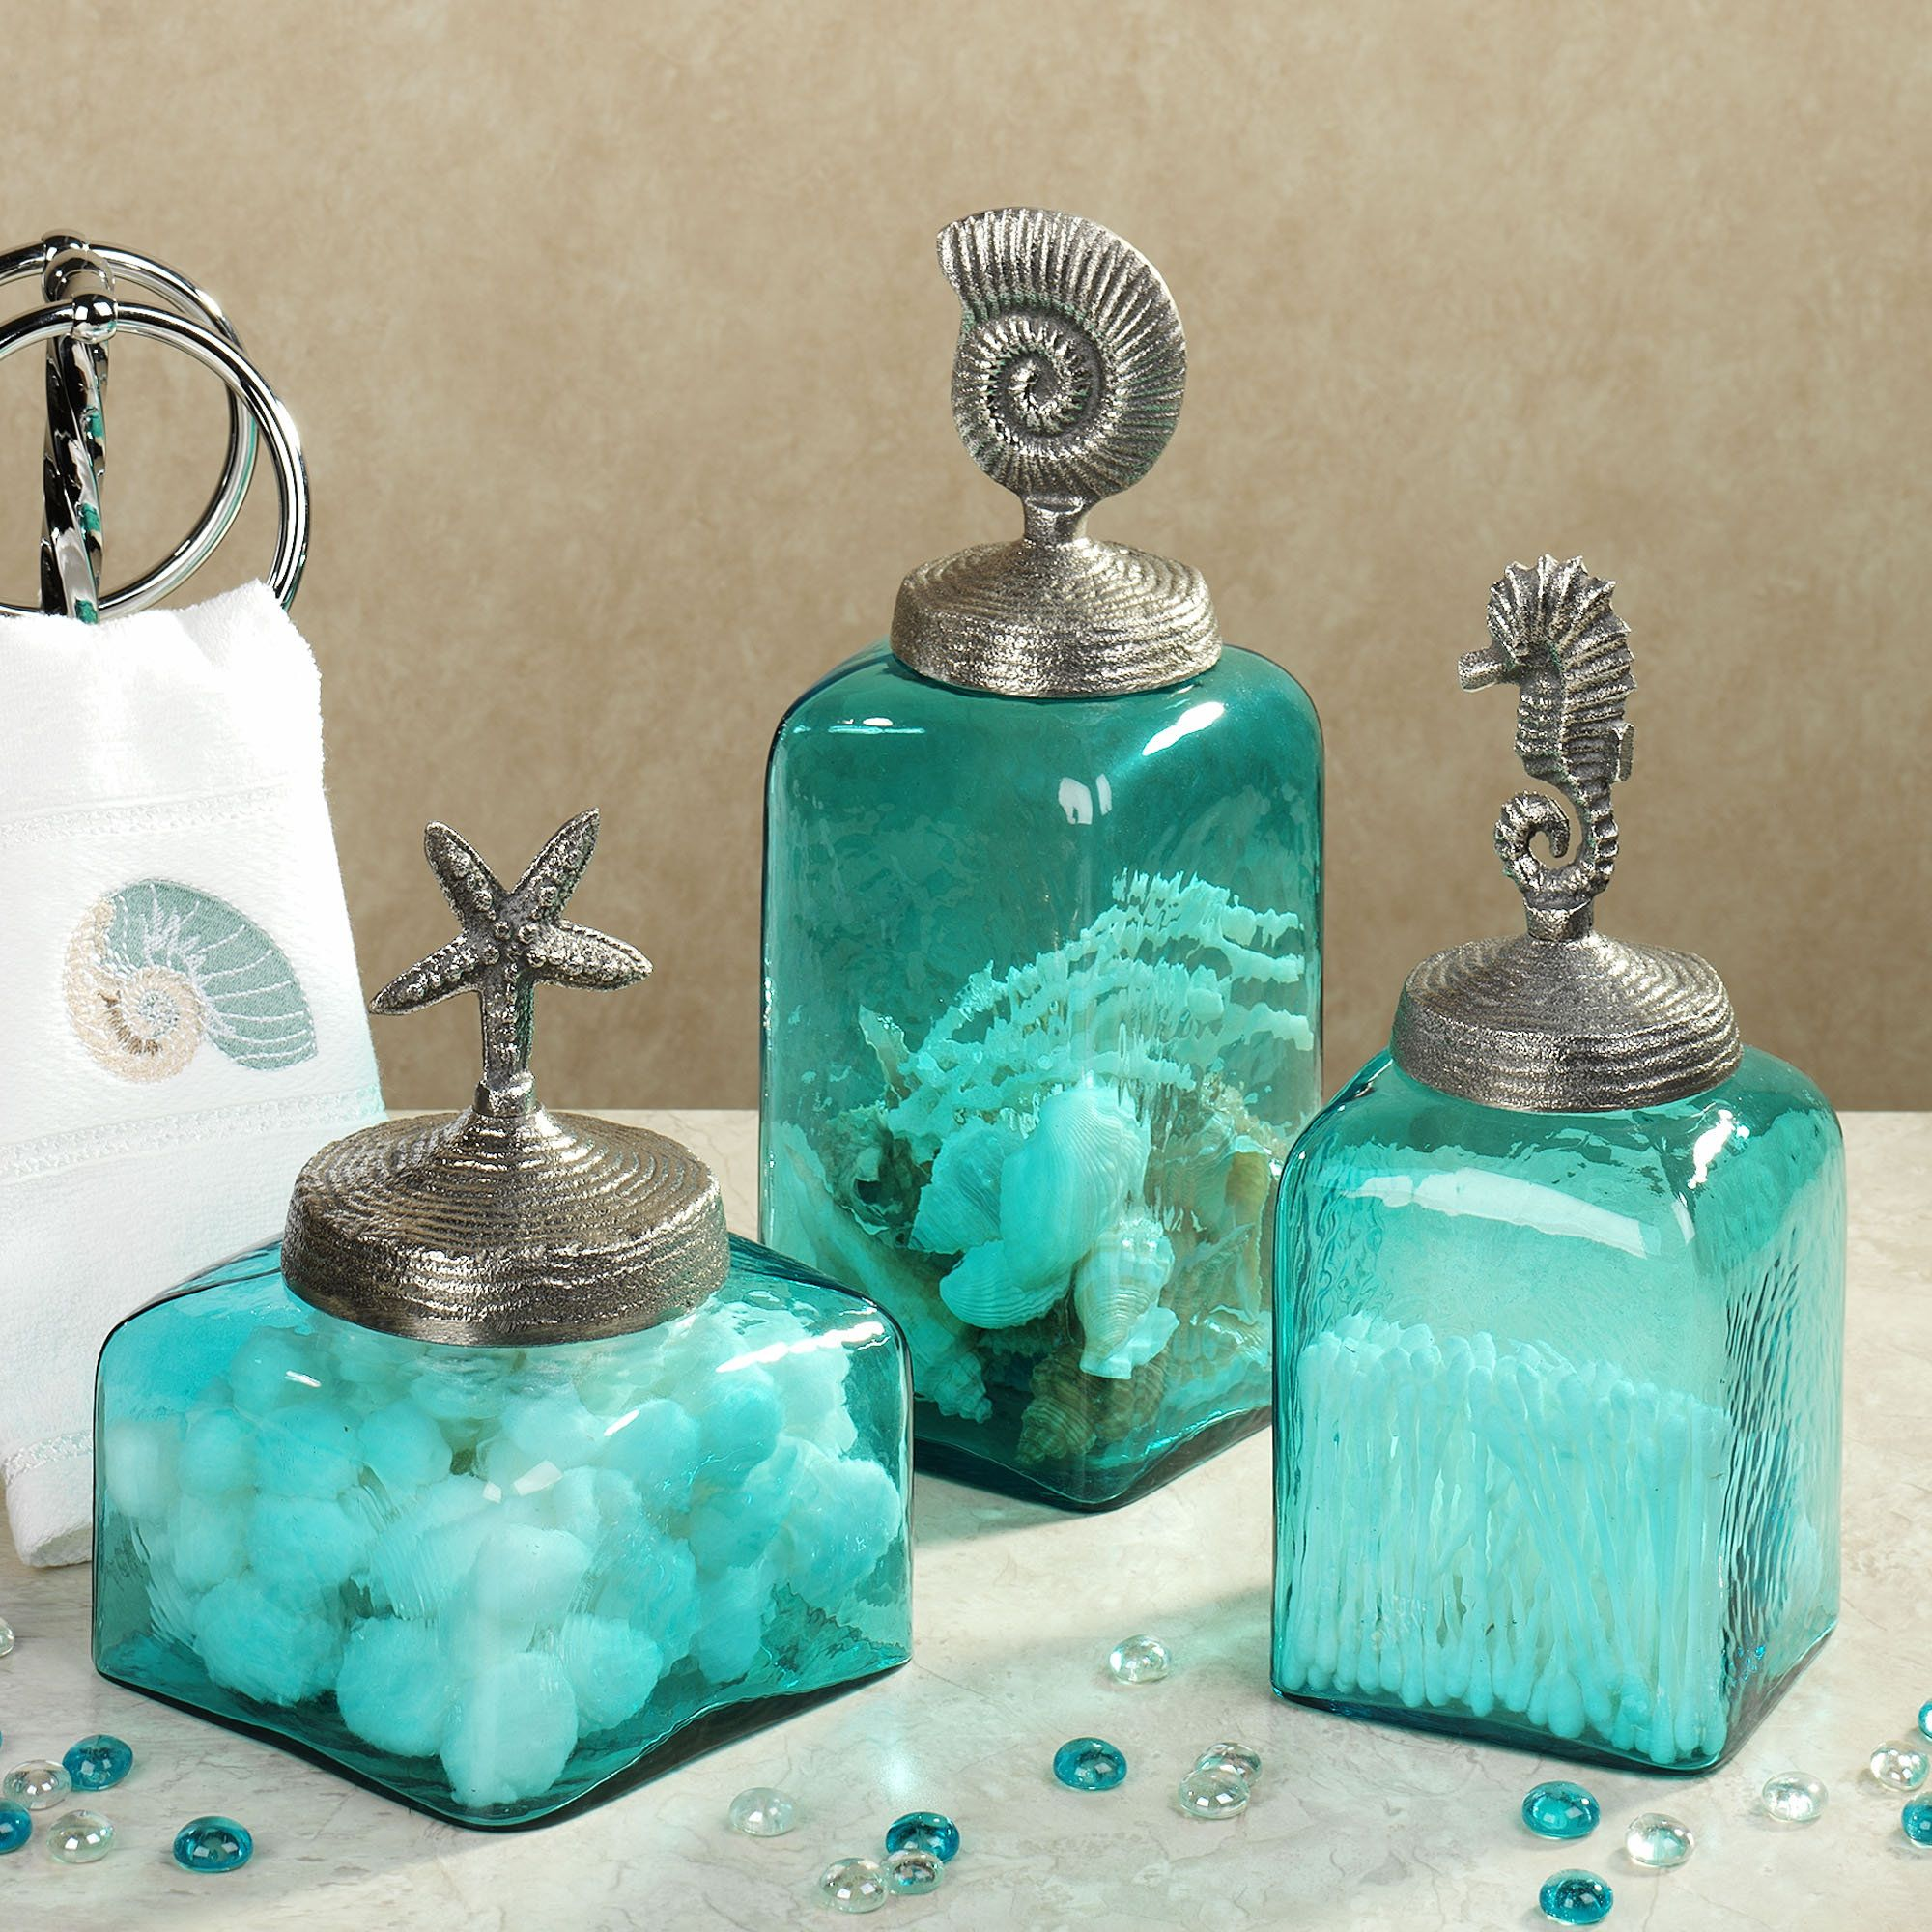 Attractive Sealife Glass Decorative Canister Set That Would Look Good In The Bathroom!